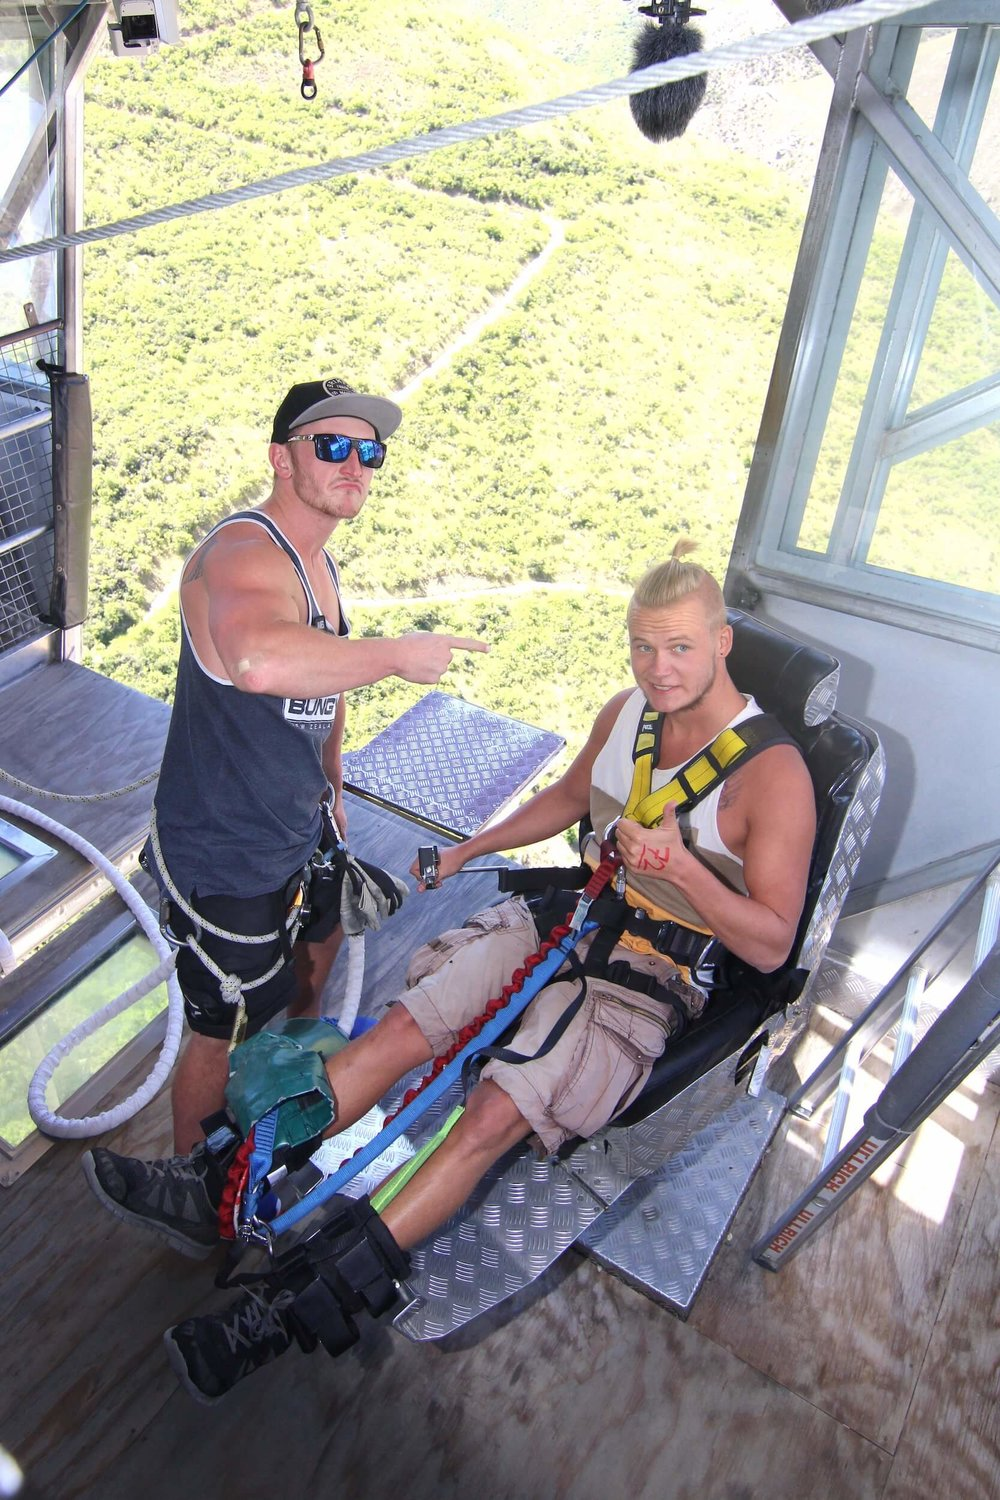 NEVIS BUNGY JUMP - GETTING STRAPPED IN